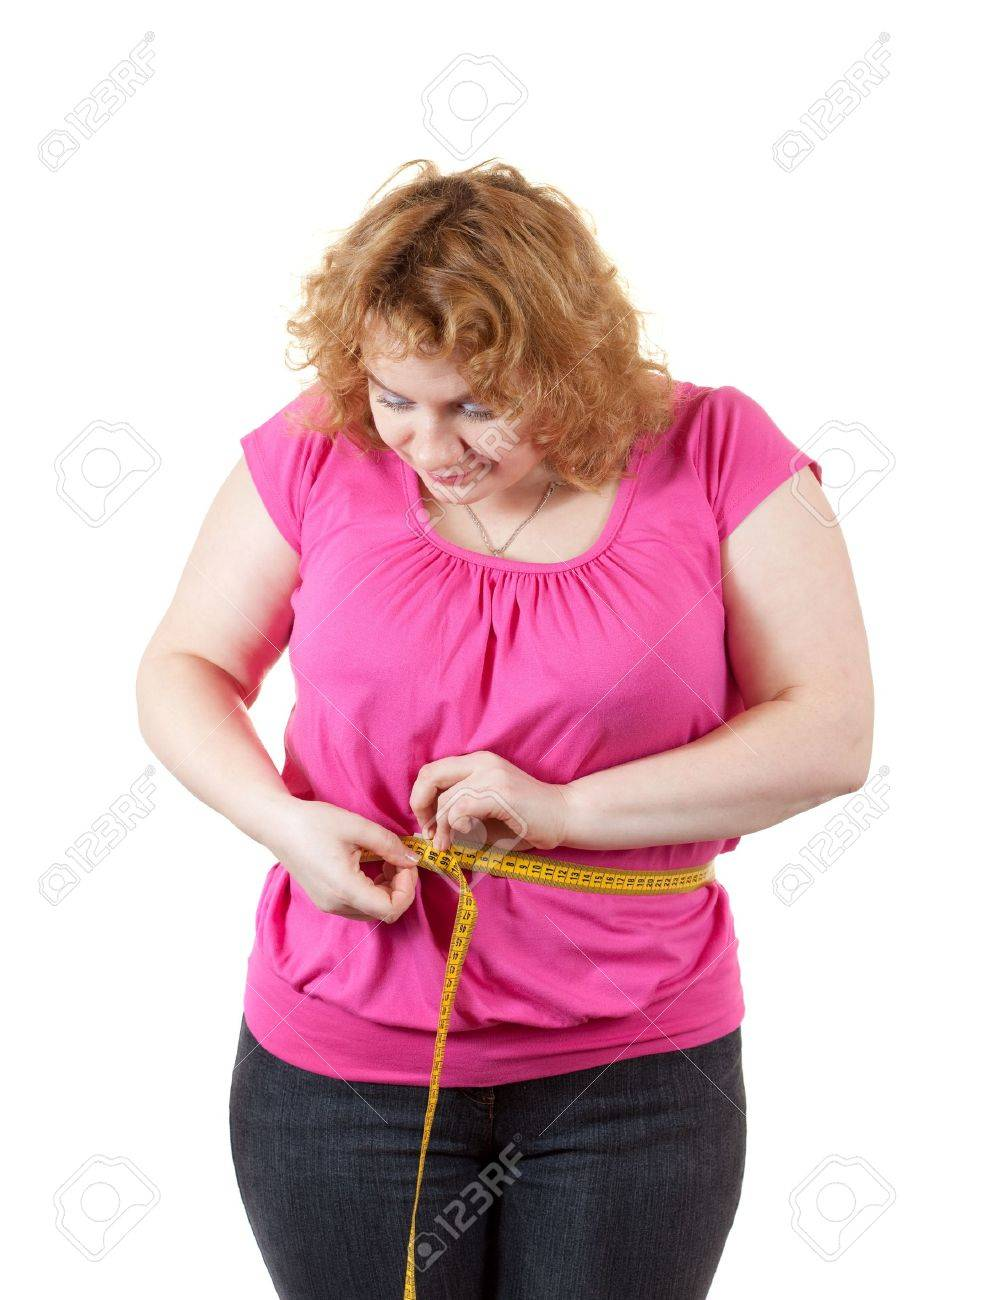 Overweight woman measuring waist. Isolated over white background - 11069982